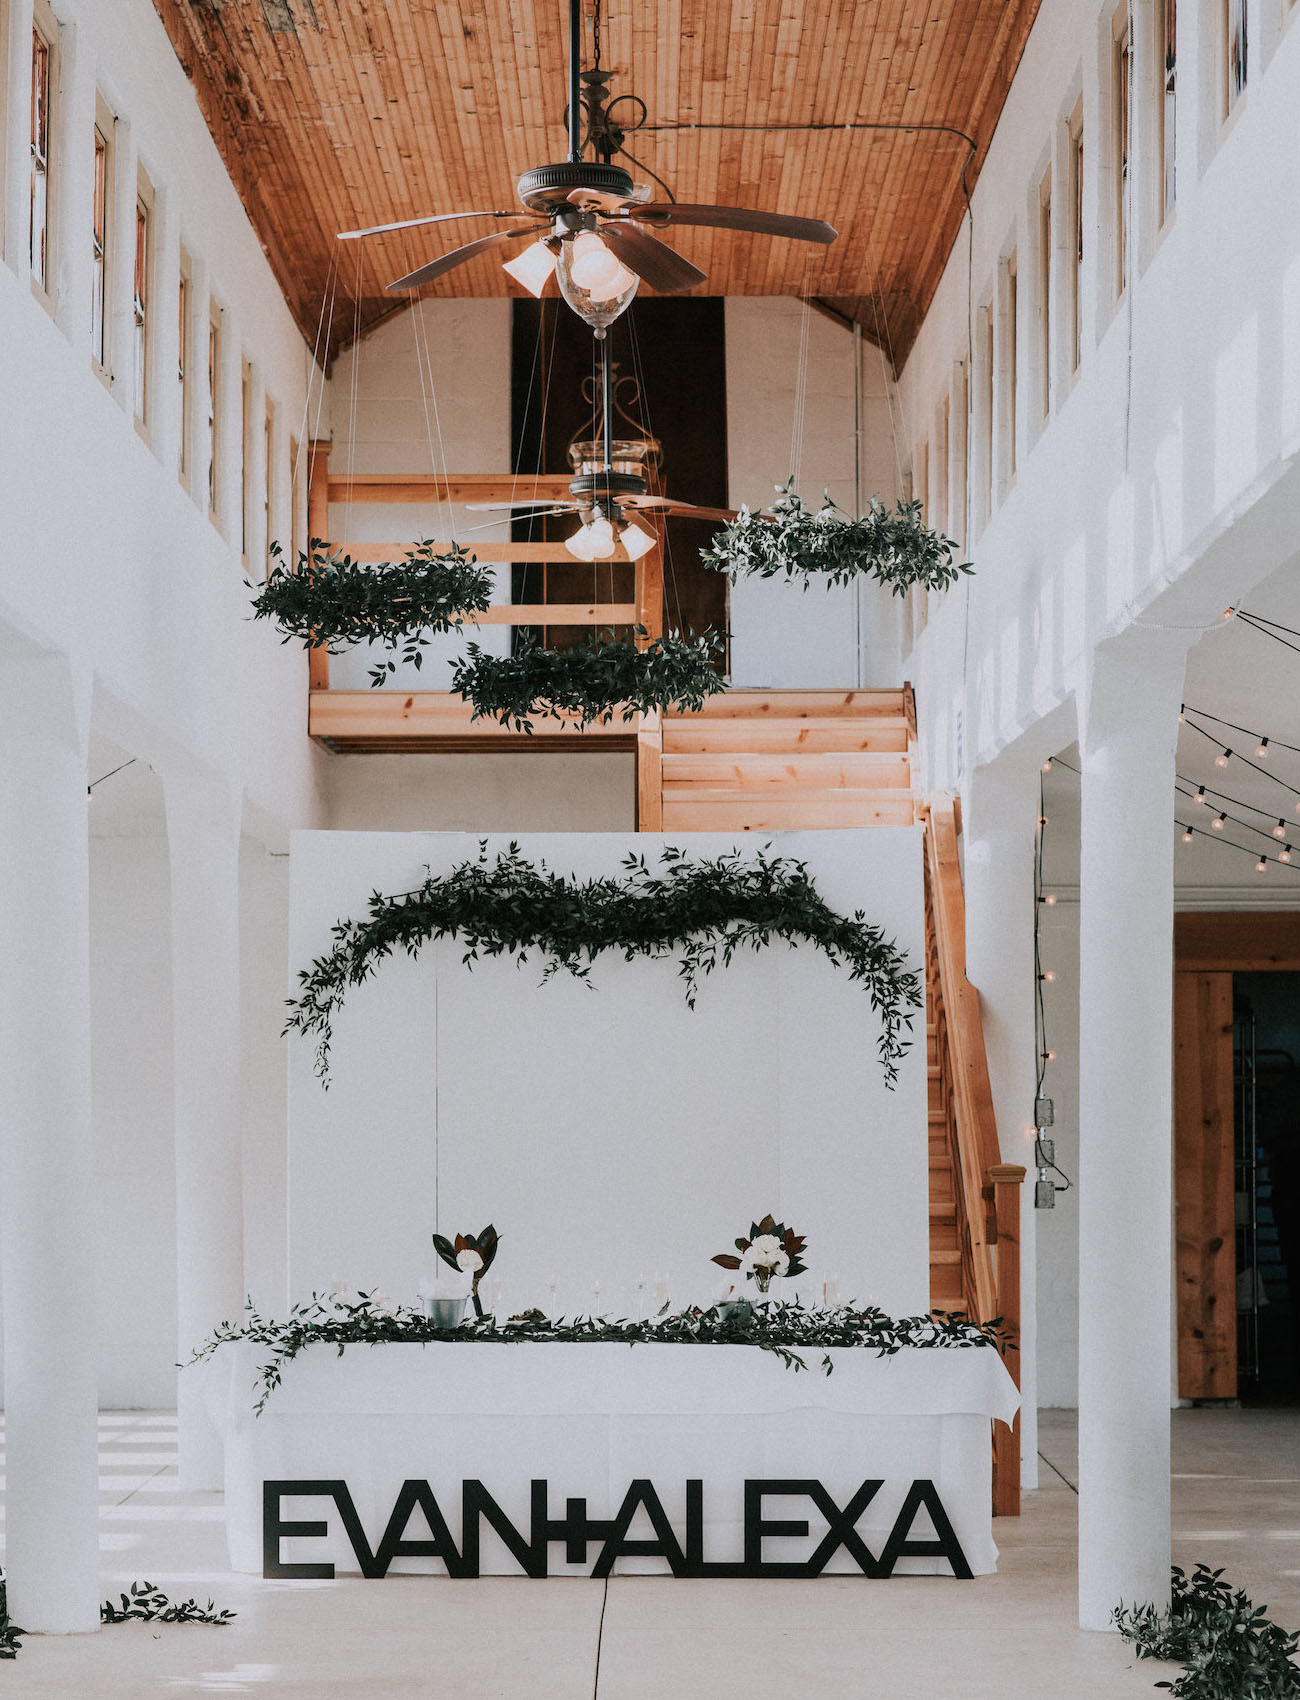 giant wedding letters